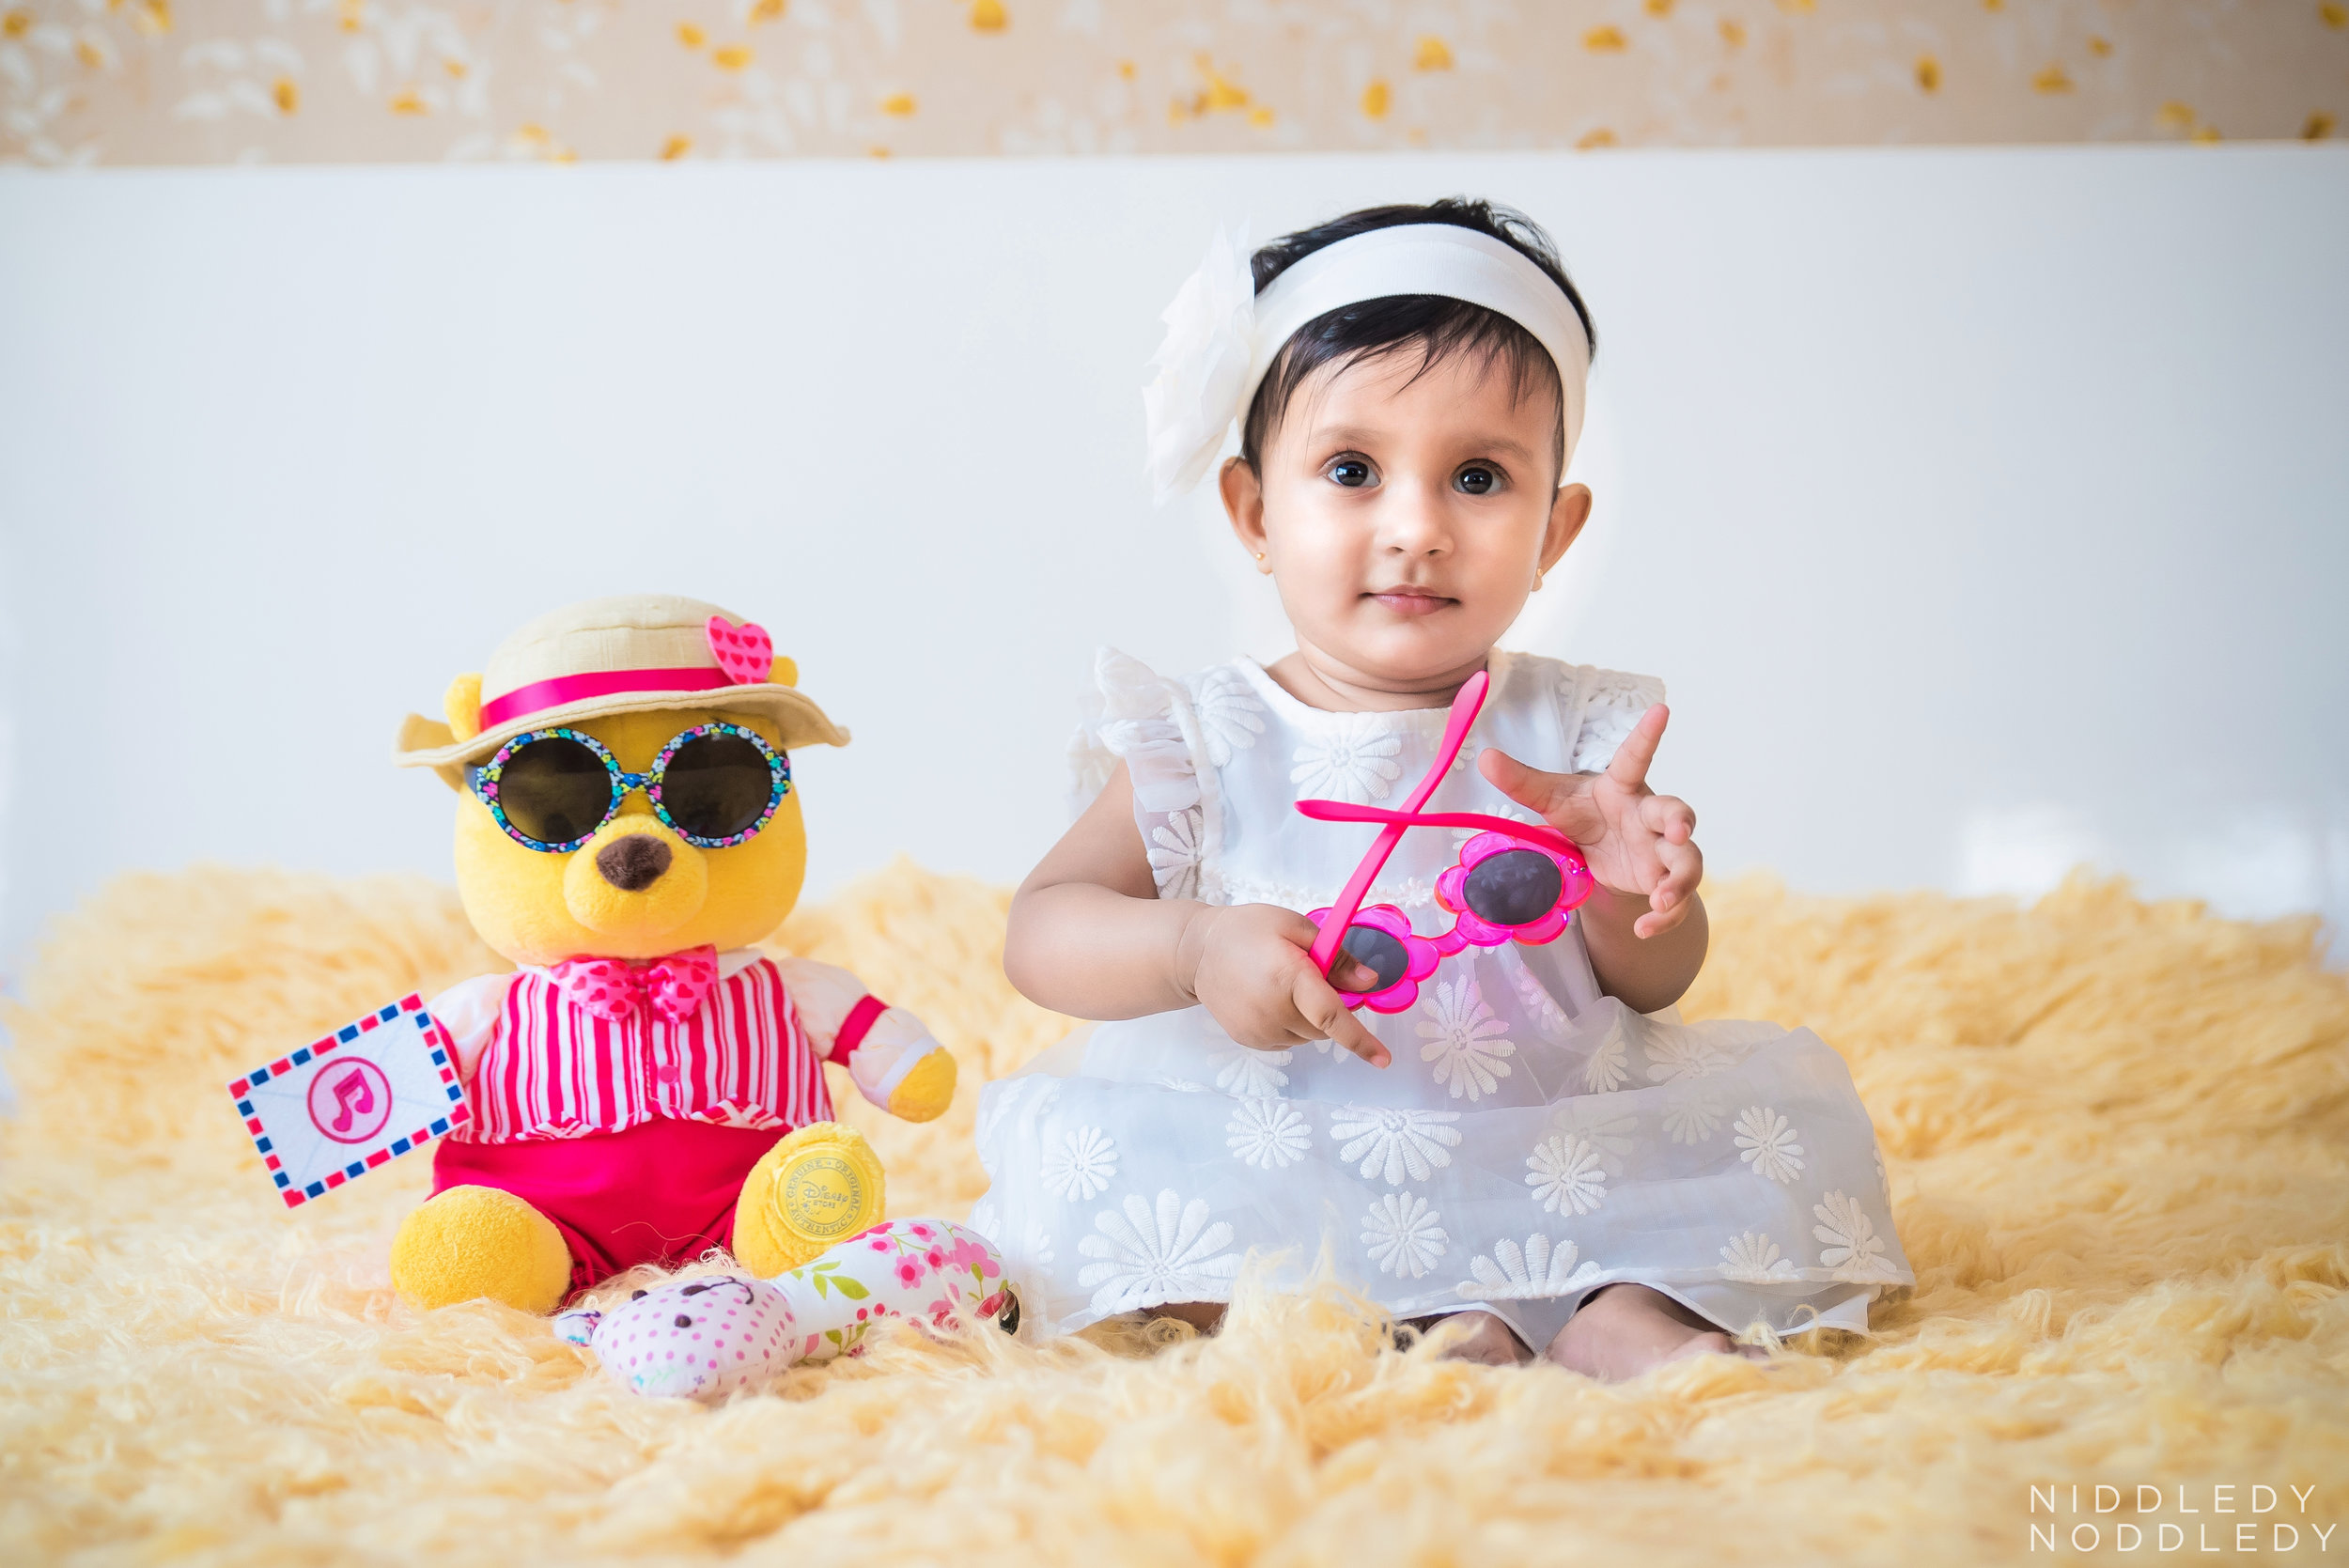 Anaisha Baby Photoshoot ❤ NiddledyNoddledy.com ~ Bumps to Babies Photography, Kolkata - 125.jpg